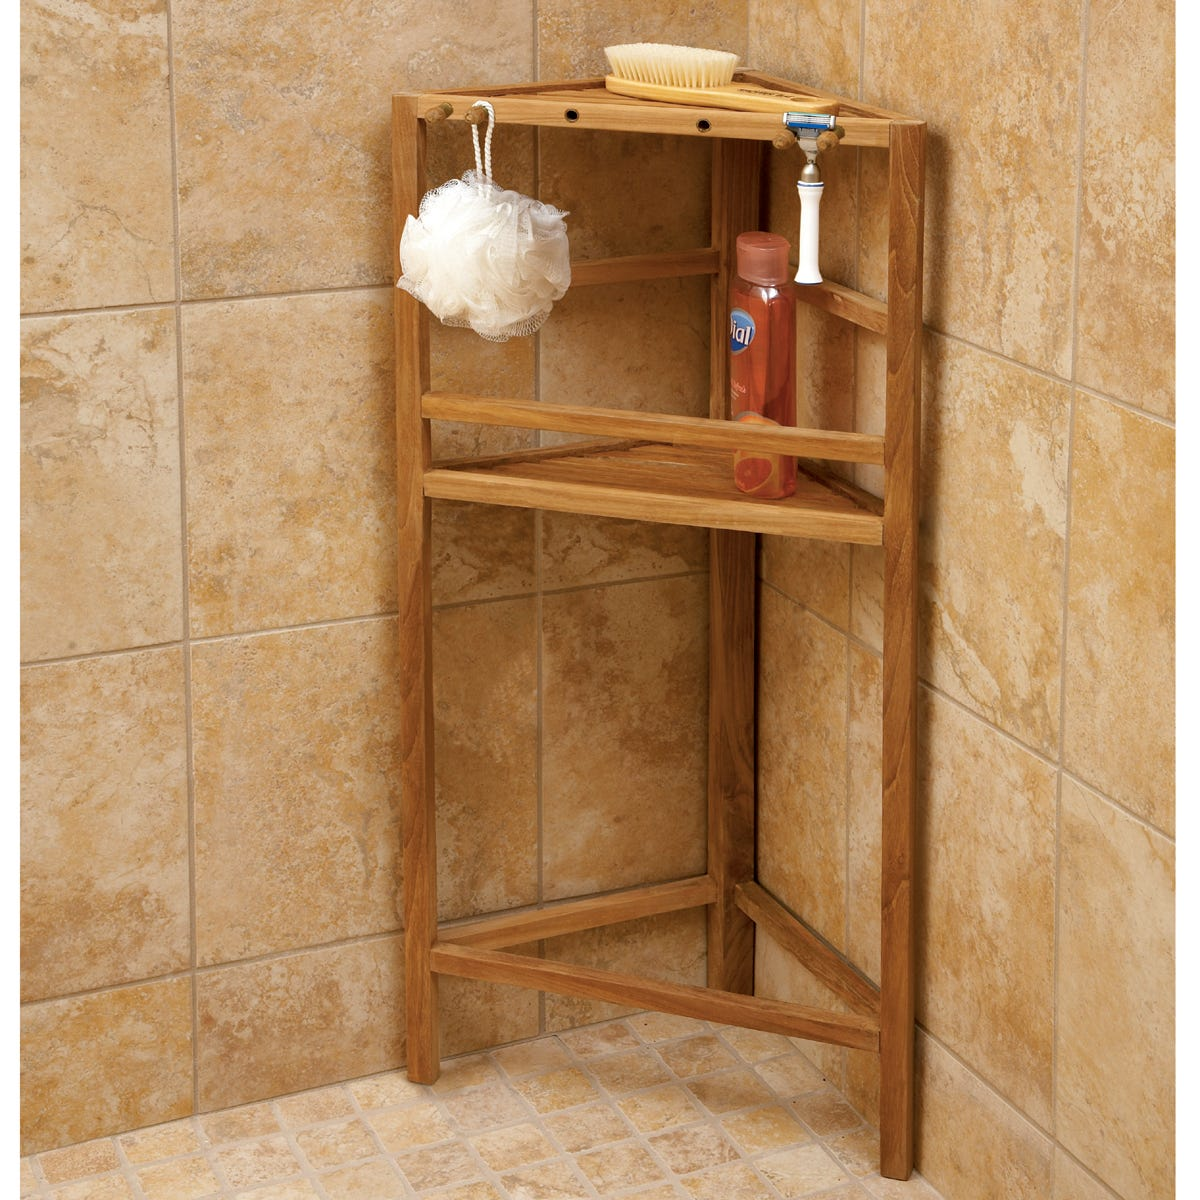 Teak Shower Shelving | Teak - from Sportys Preferred Living